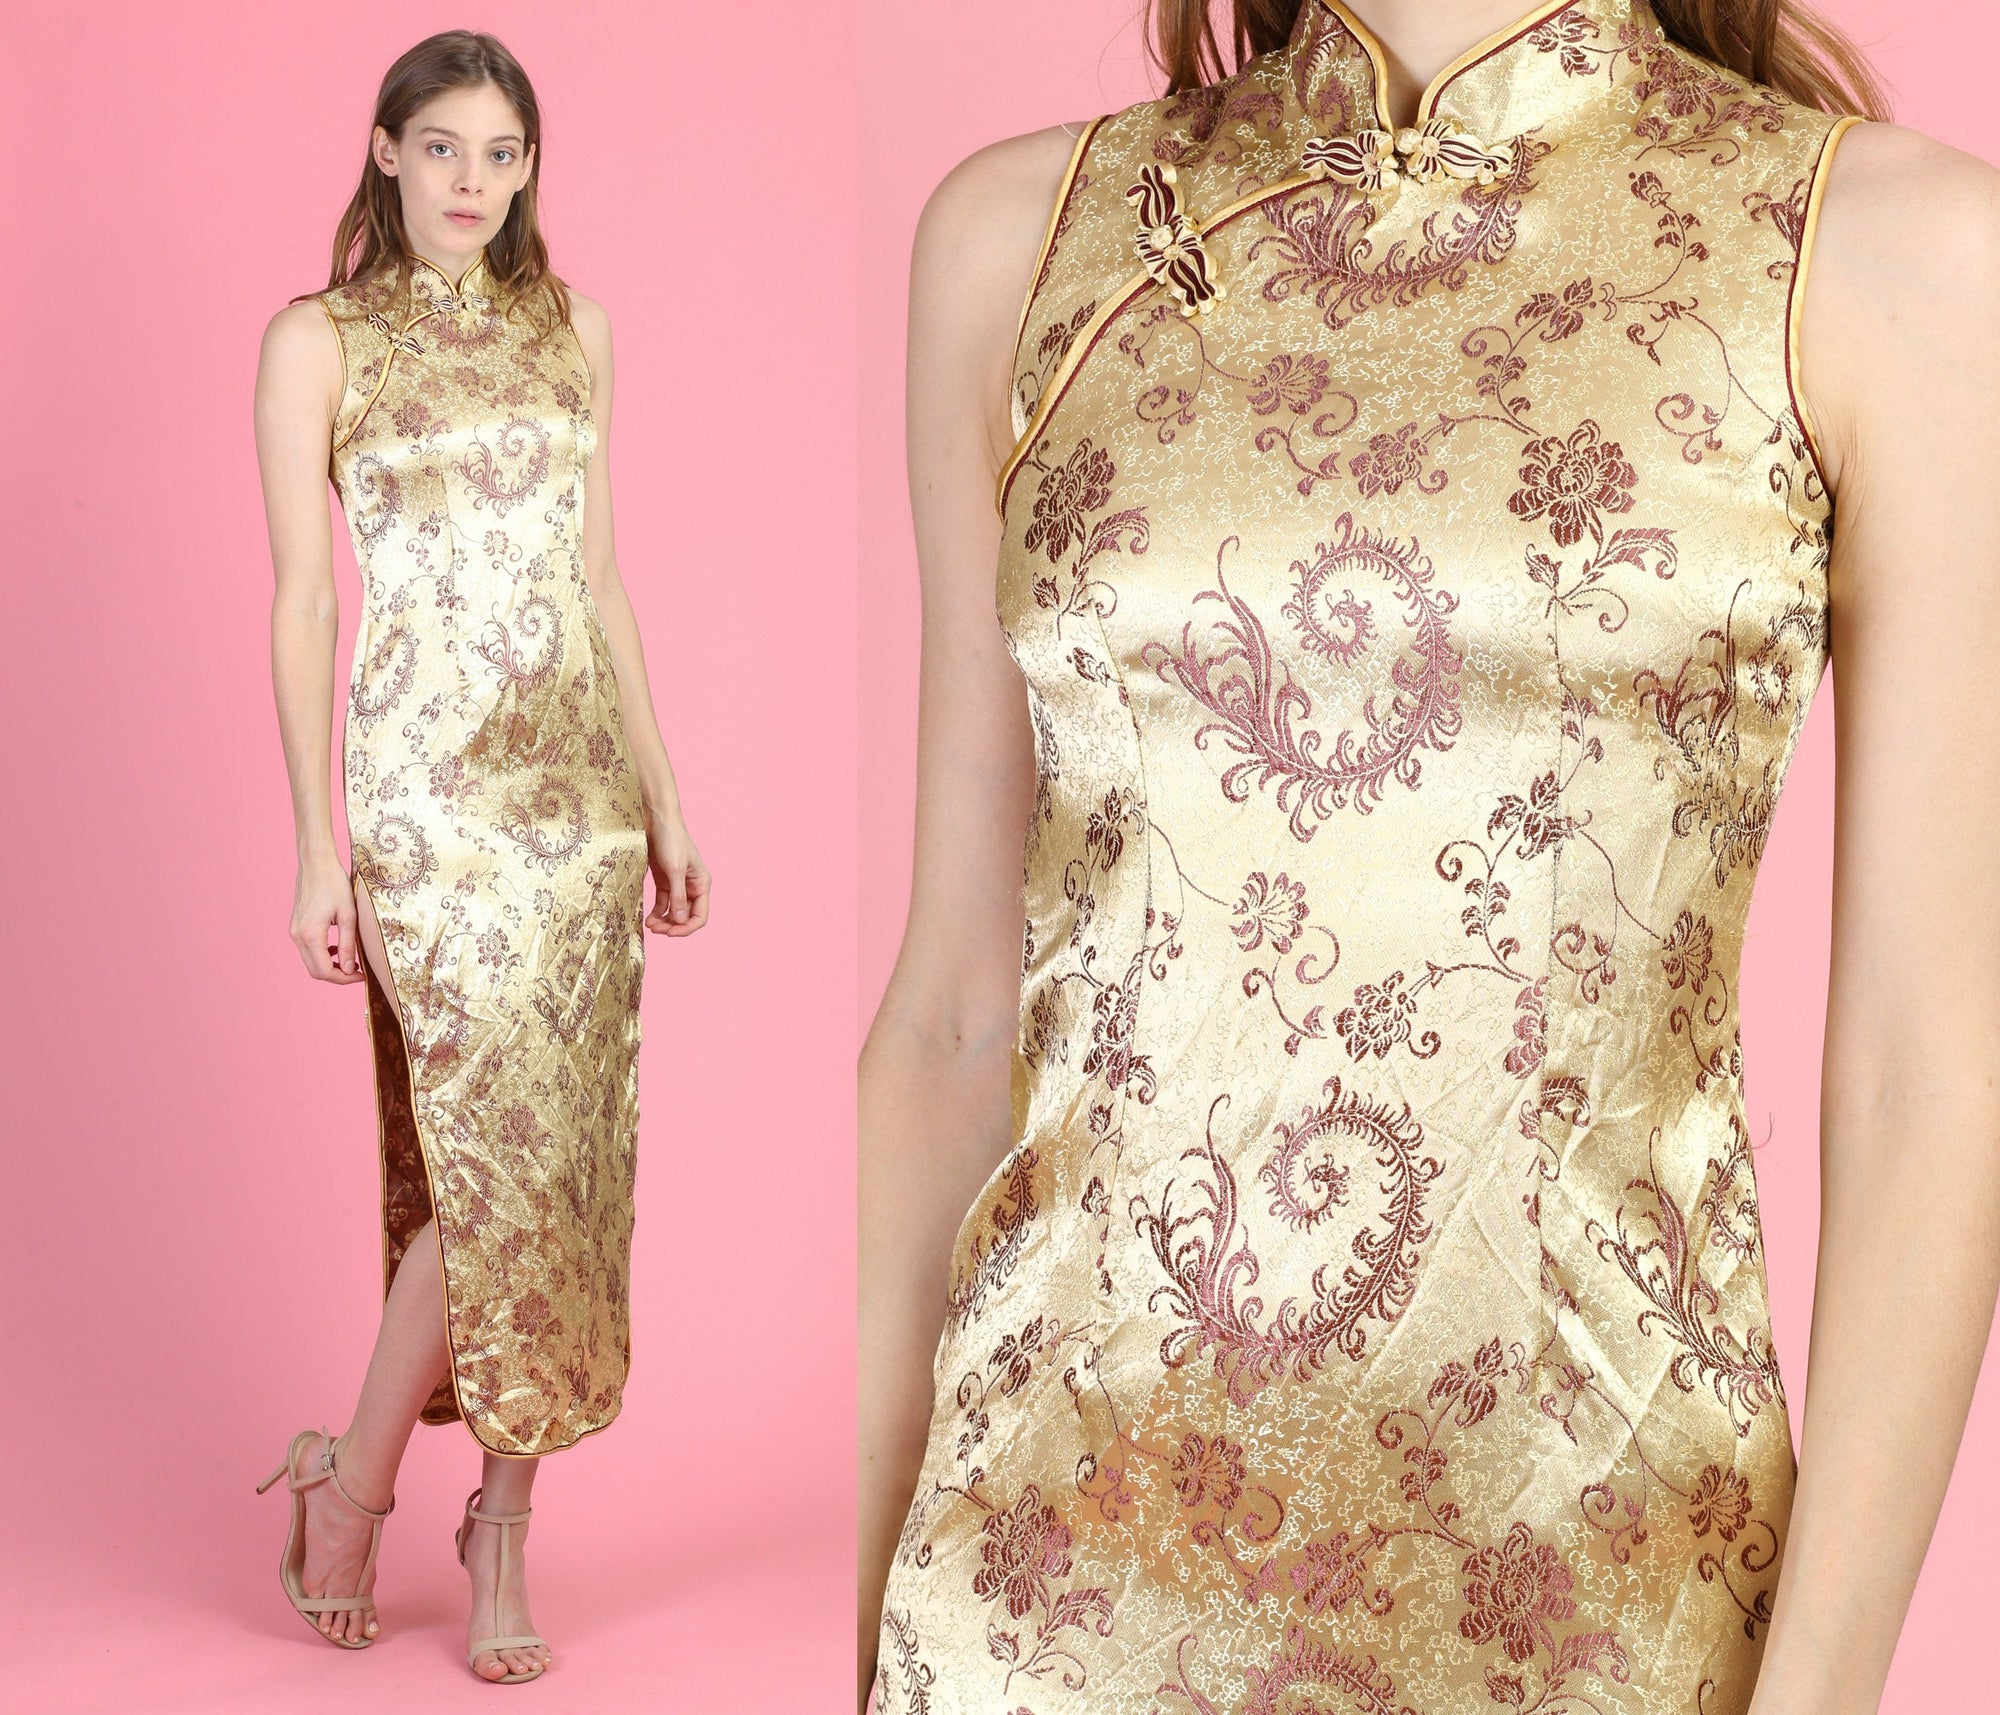 Vintage Gold Cheongsam High Slit Dress - Extra Small